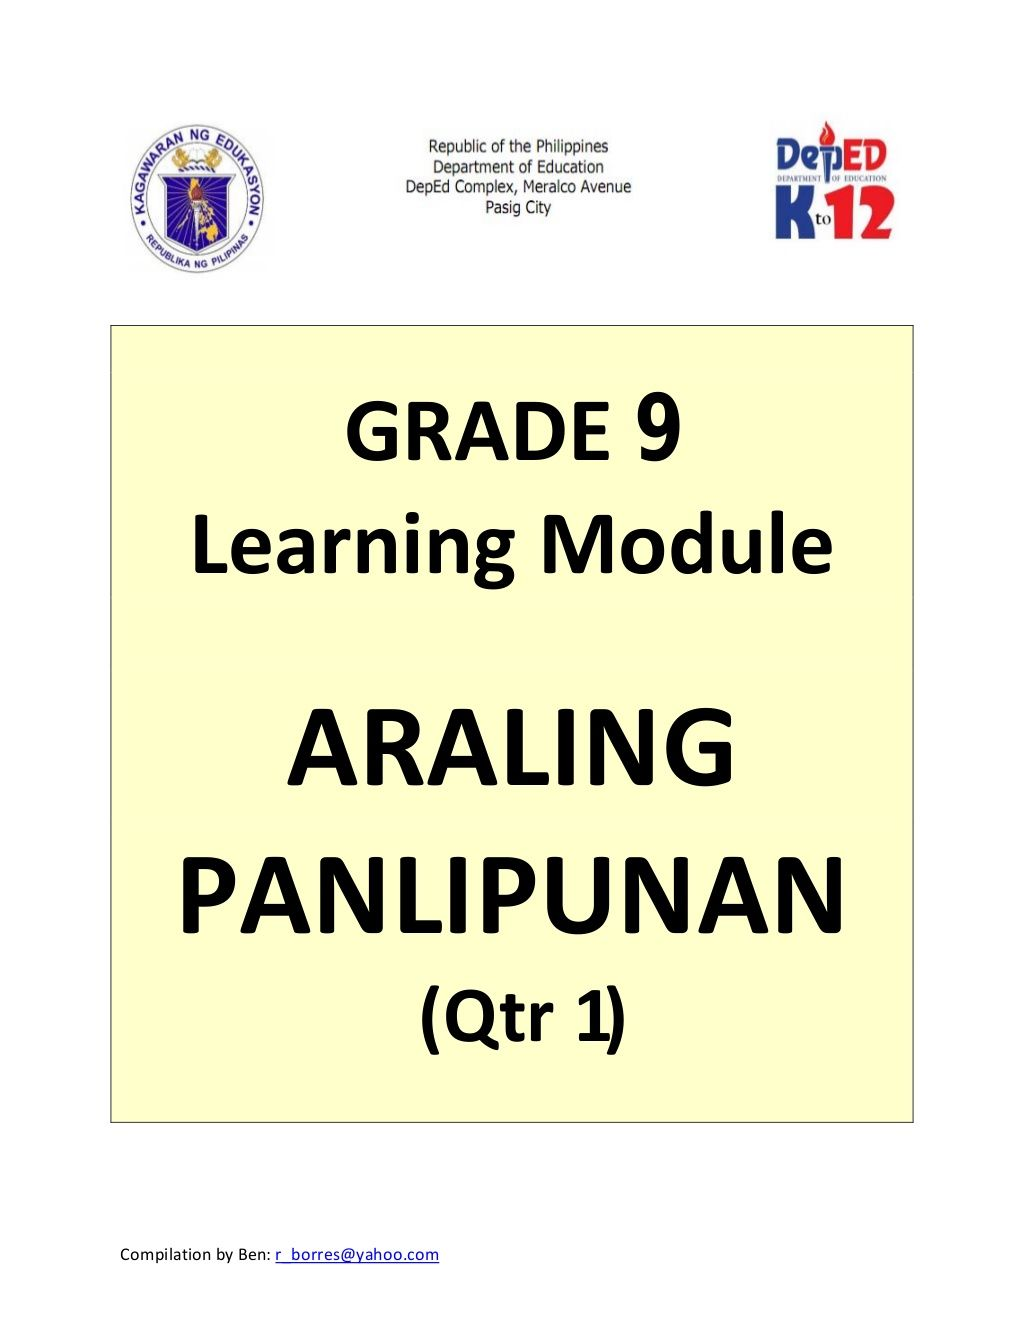 medium resolution of Grade 9 Learning Module in Araling Panlipunan - Quarter 1 only   High  school lesson plans